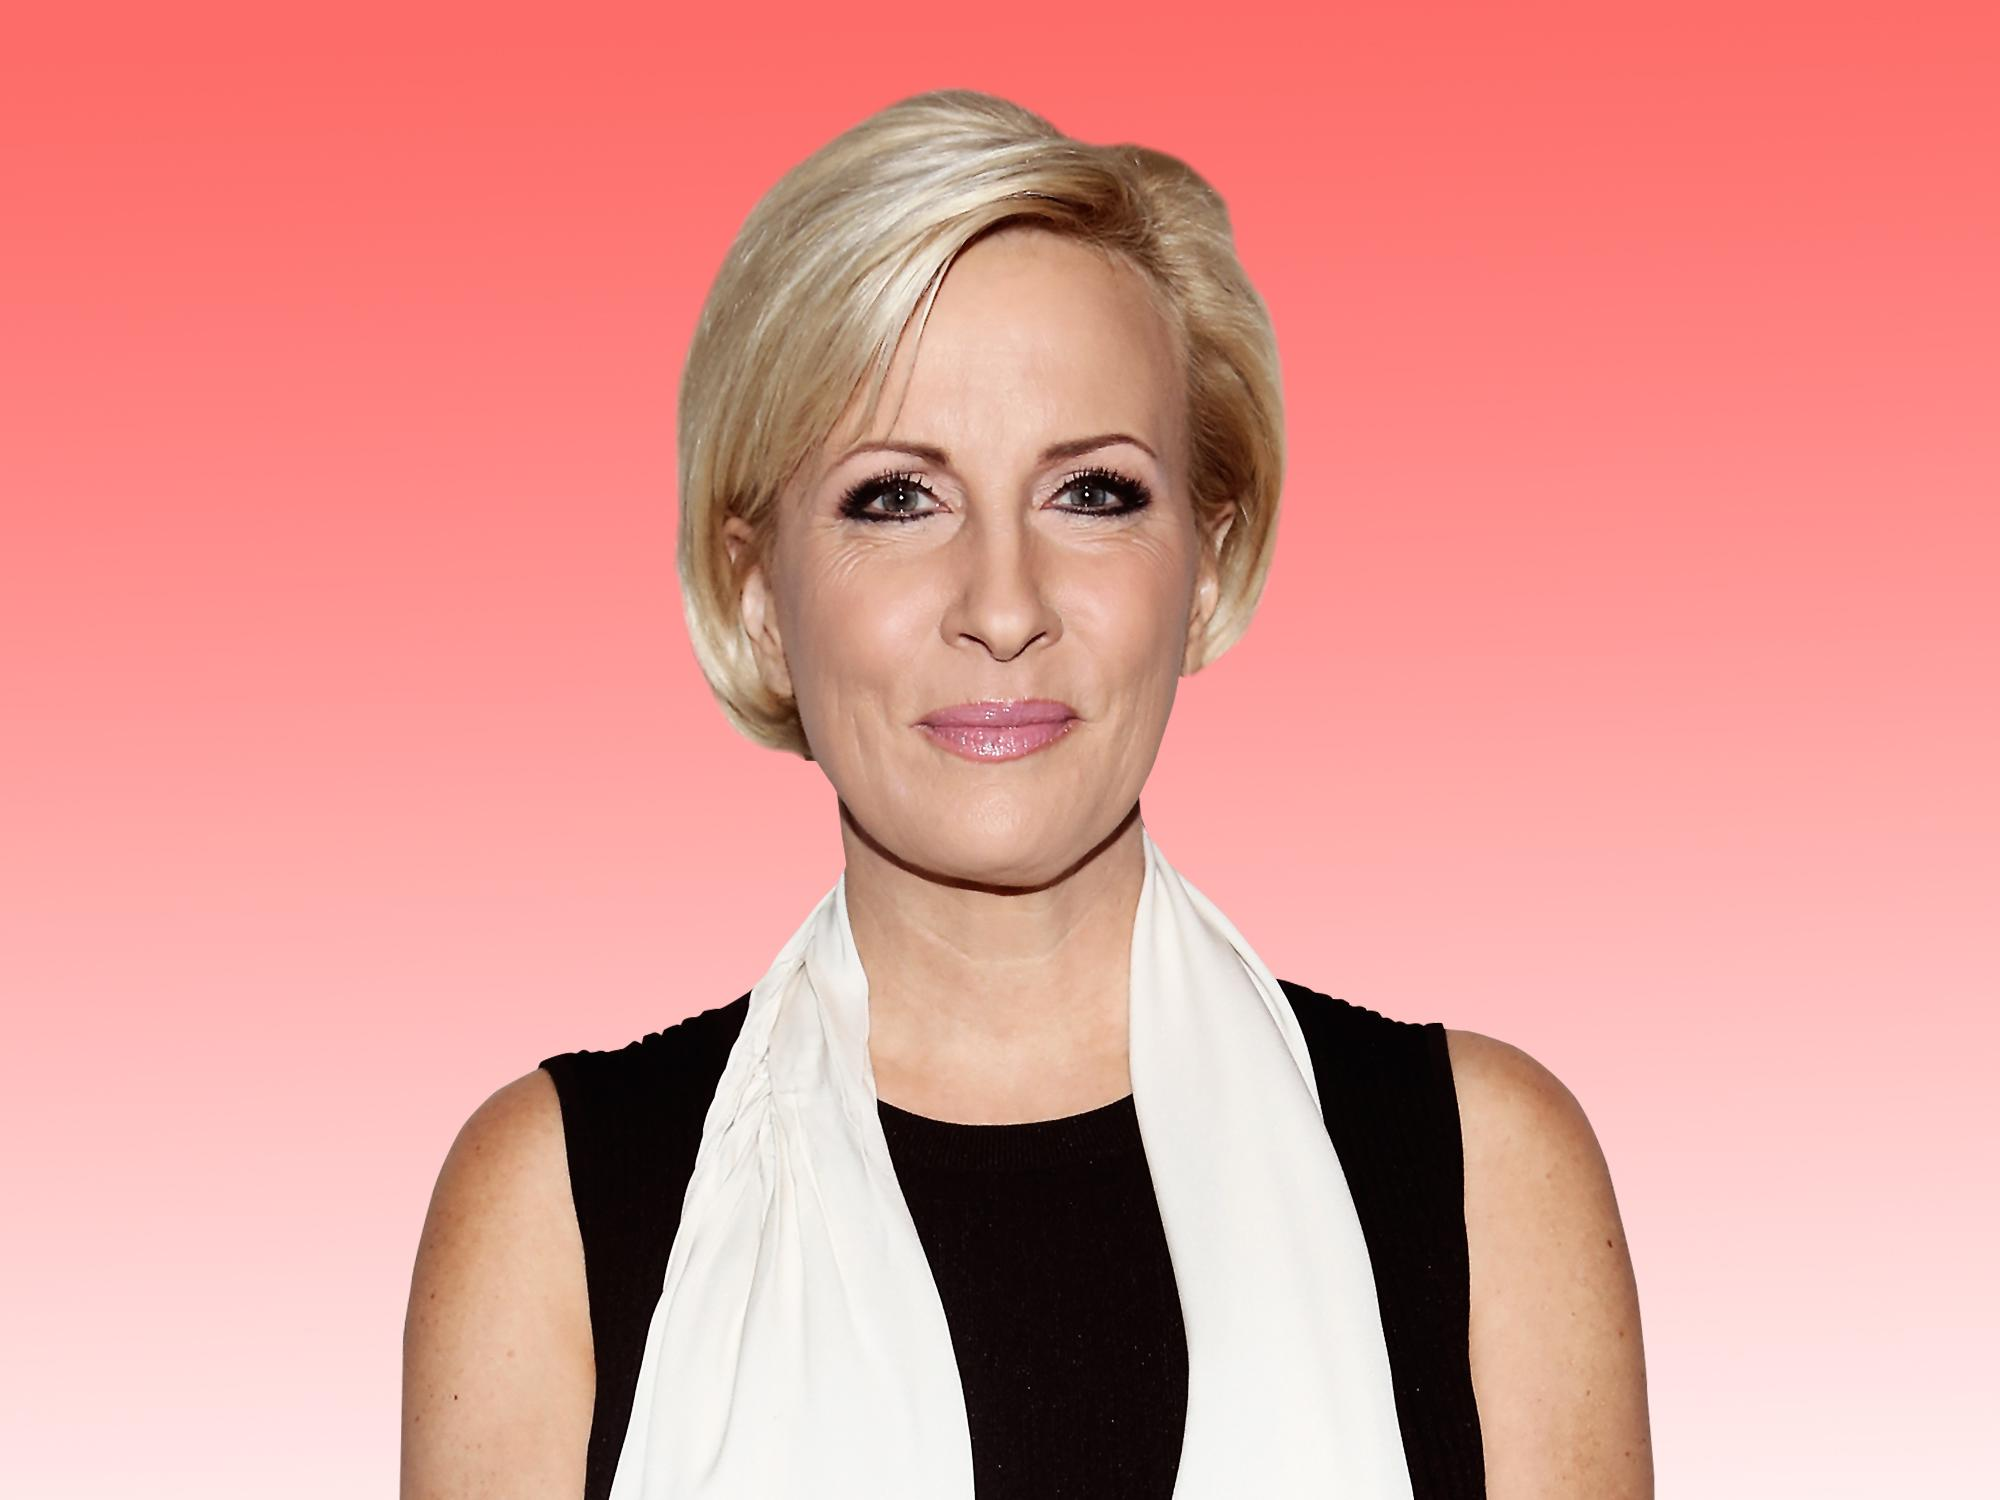 Morning Joe Cohost Mika Brzezinski Will Never Make This Money Mistake Again